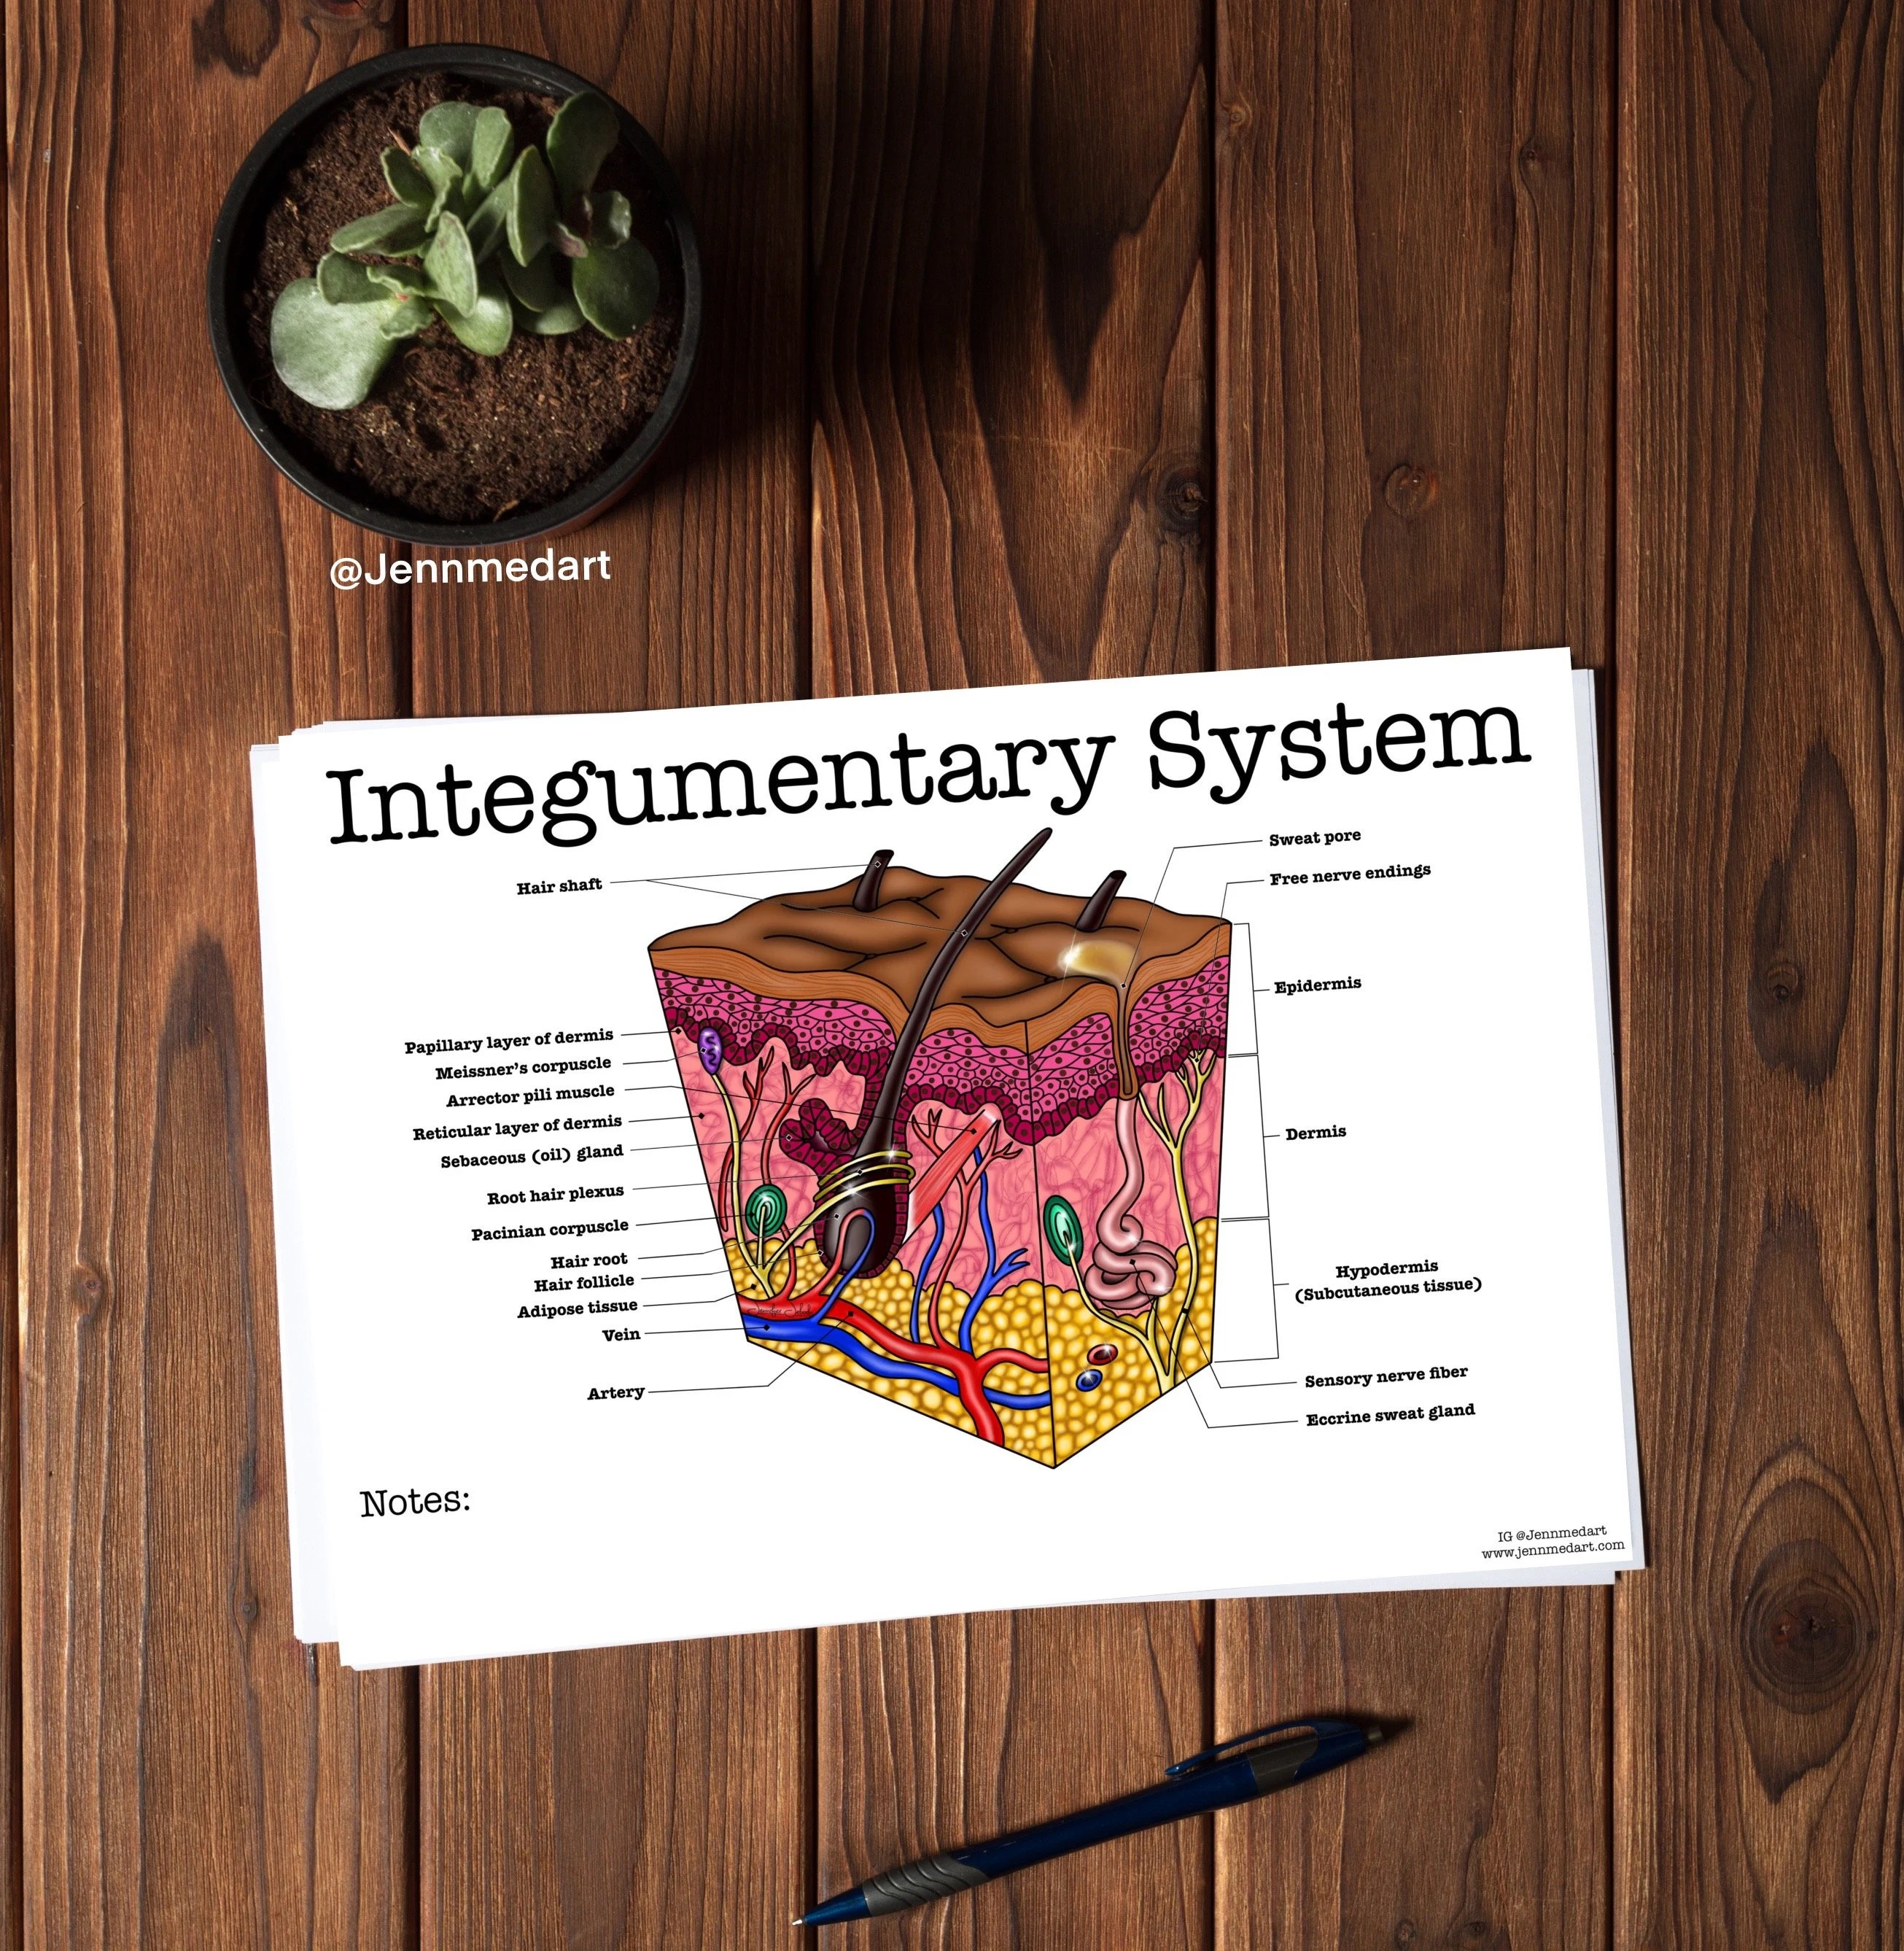 Integumentary System Worksheet 3 In 1 Set A Labeled